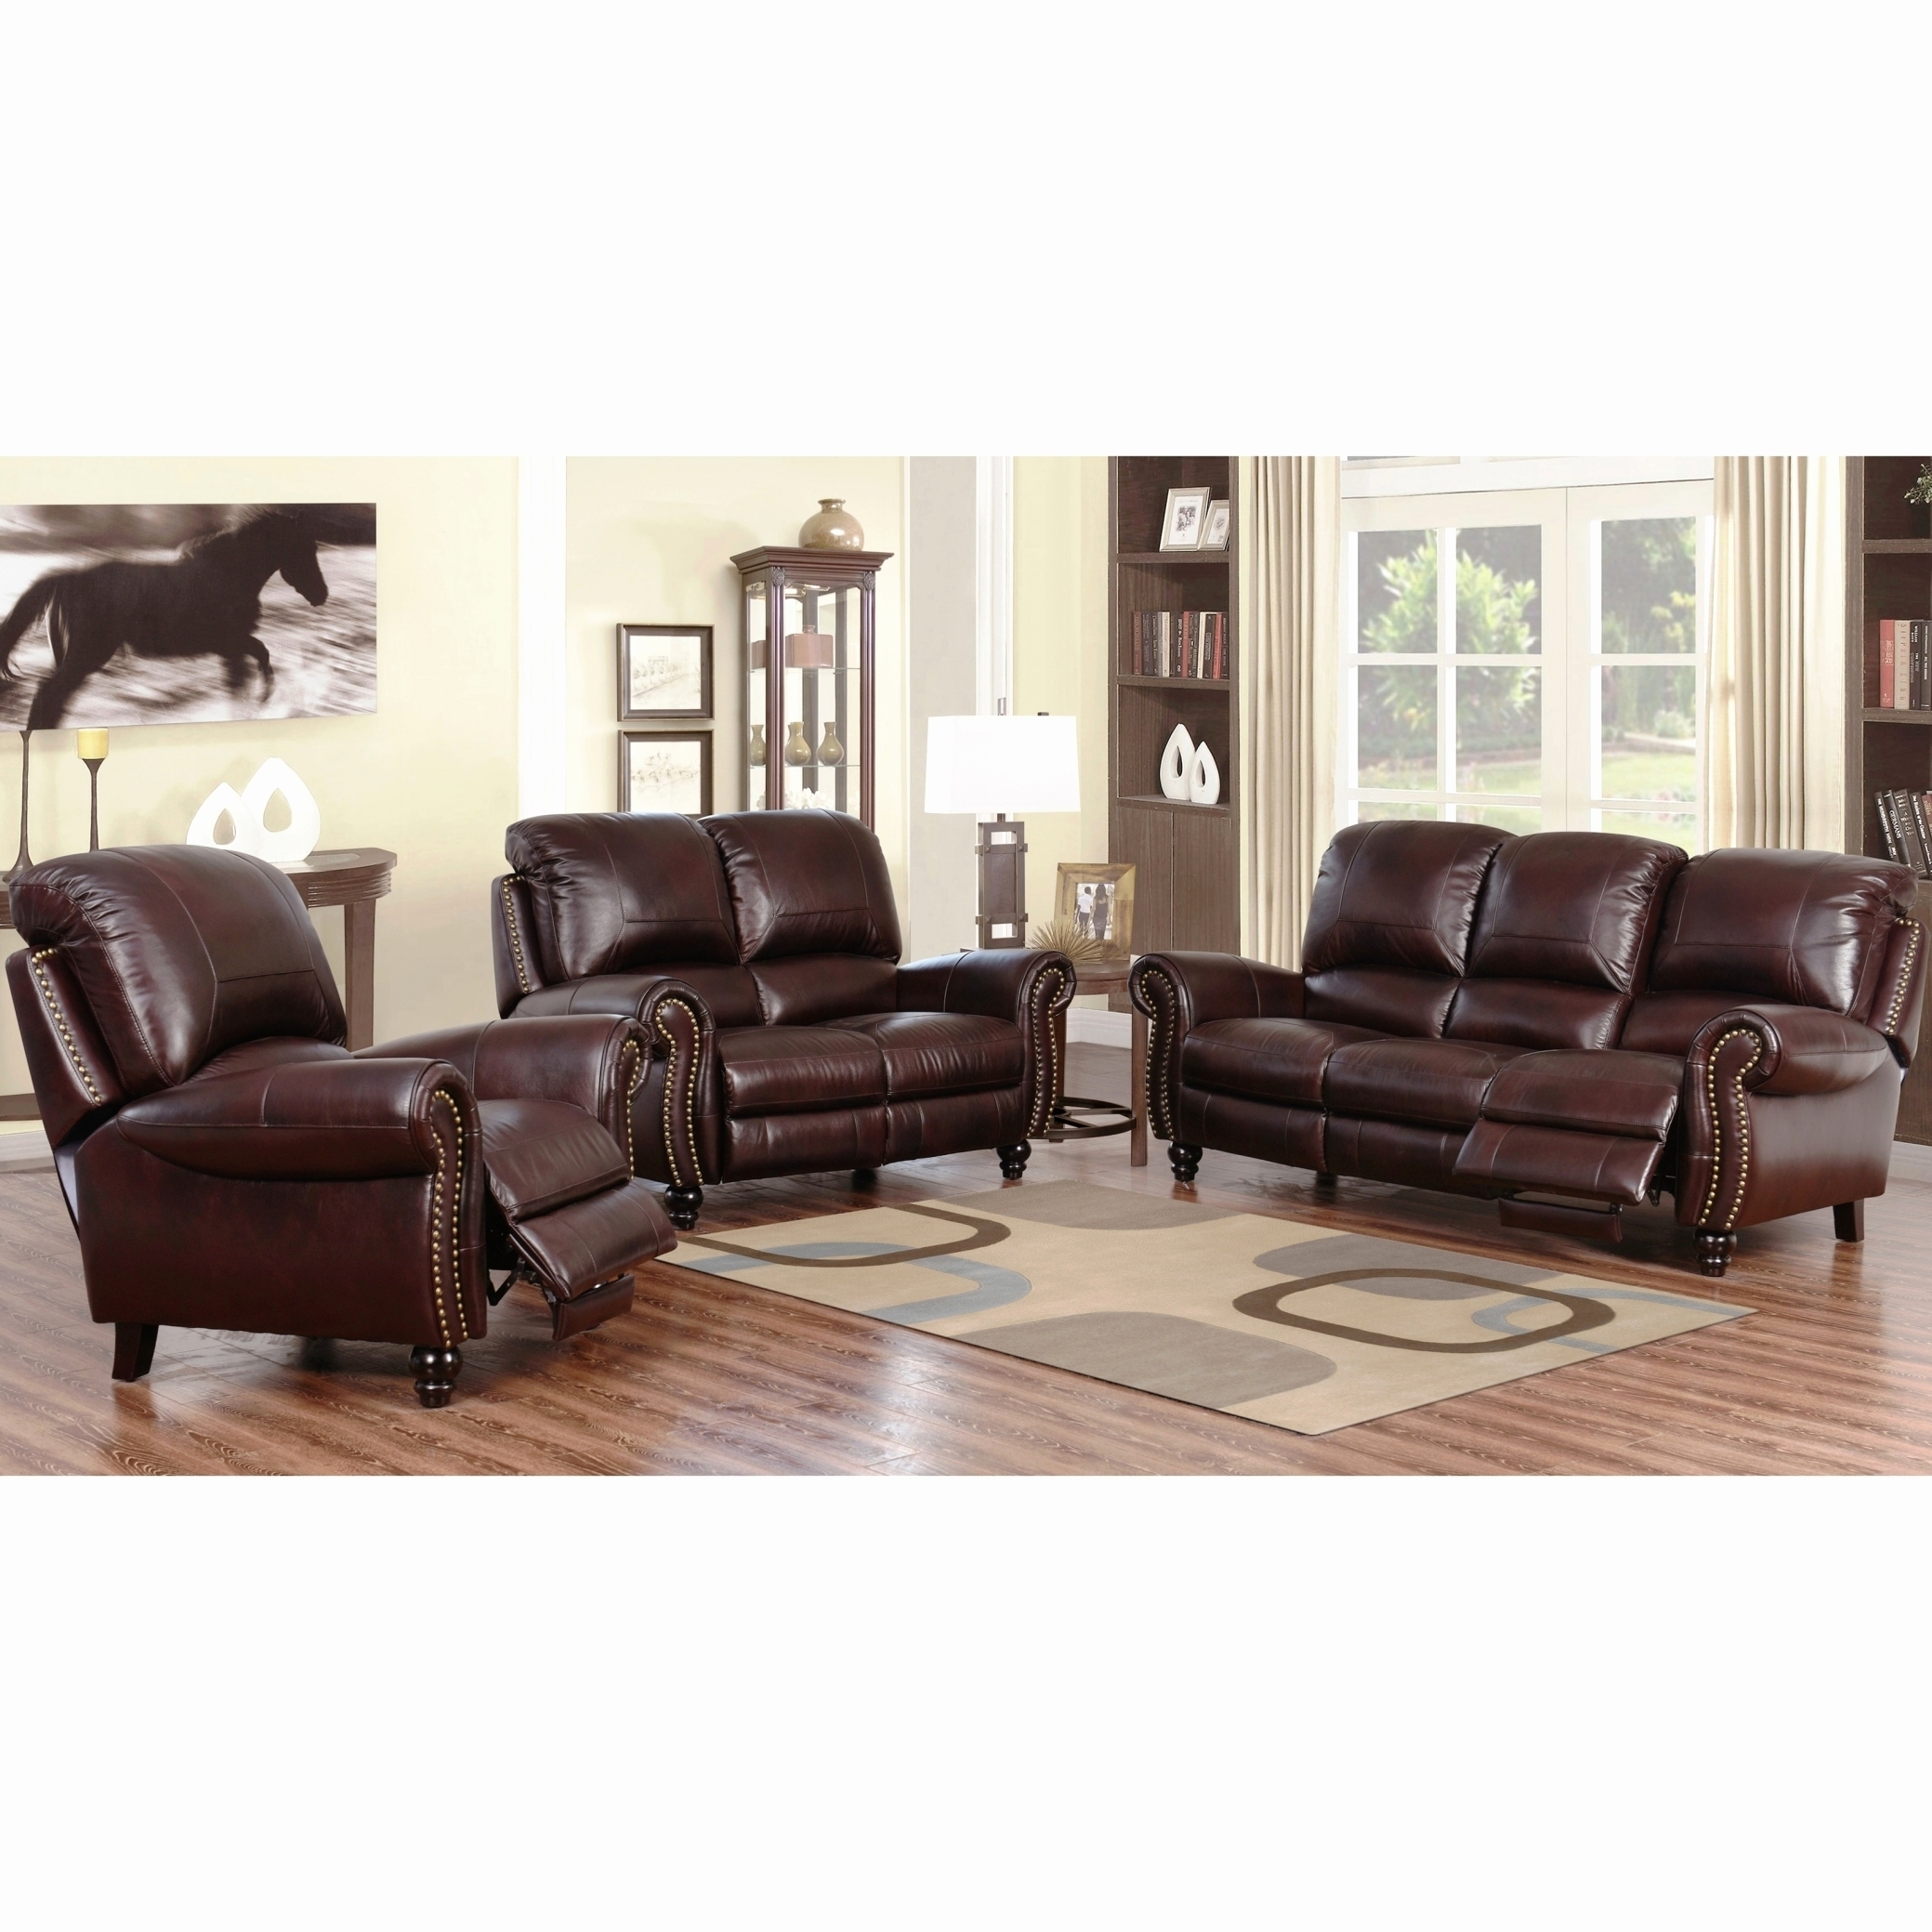 32 Enchanting Overstock Sectional Sofas Pictures – Sectional Sofa In Overstock Sectional Sofas (View 10 of 10)